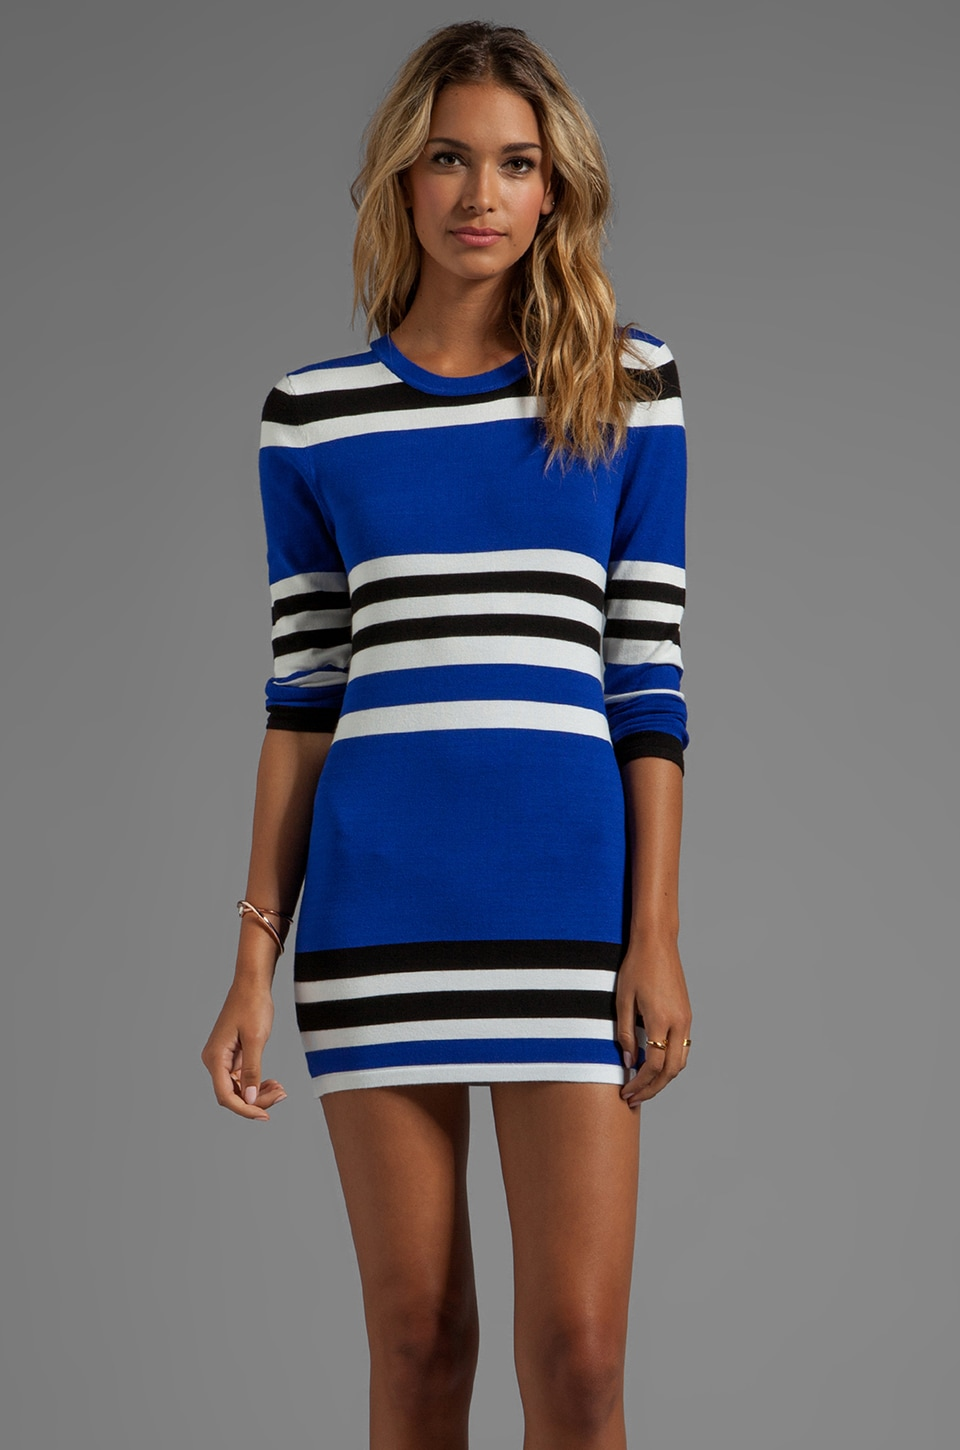 Central Park West Casper Long Sleeve Striped Body Con in Cobalt/White/Black